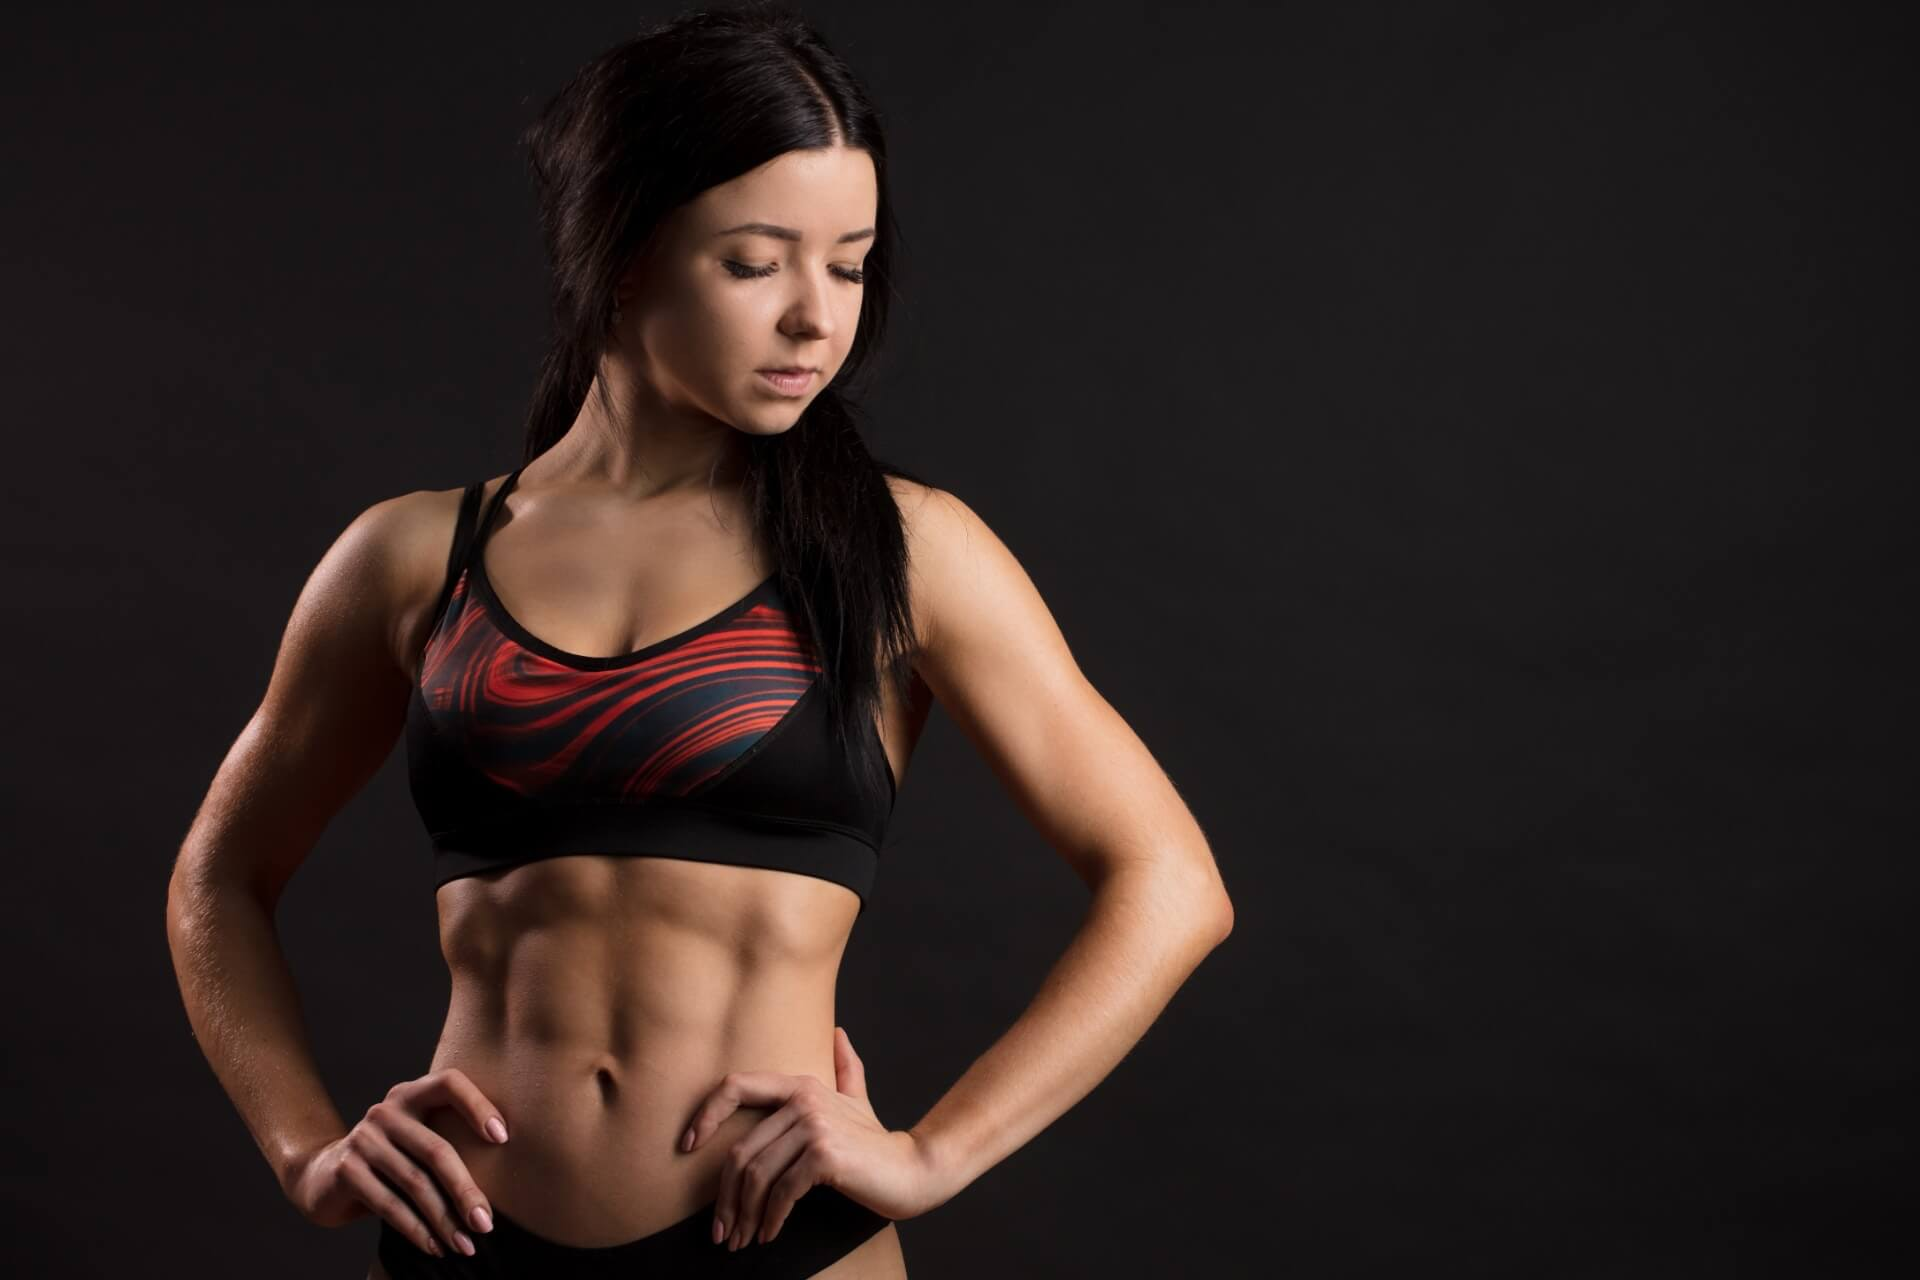 Woman showing off her abs